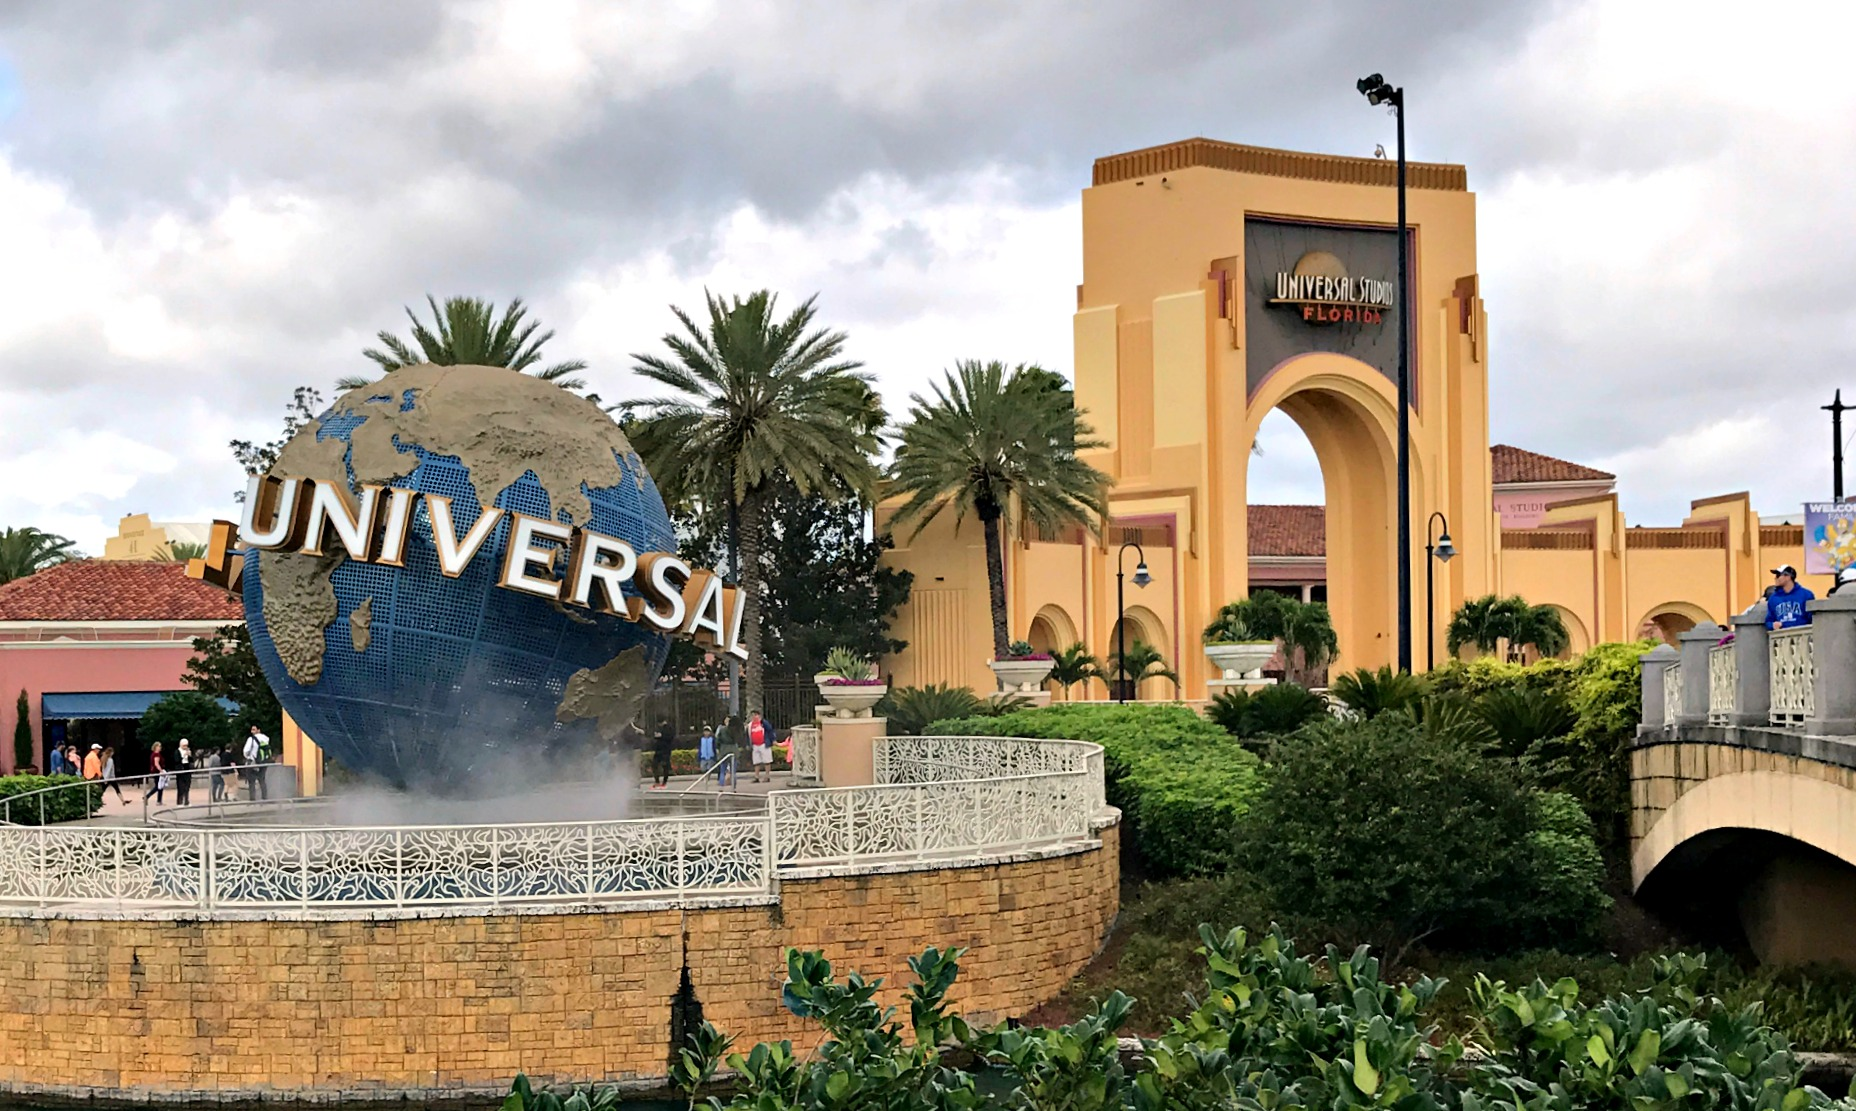 My Favorite Universal Studios Orlando Rides and More